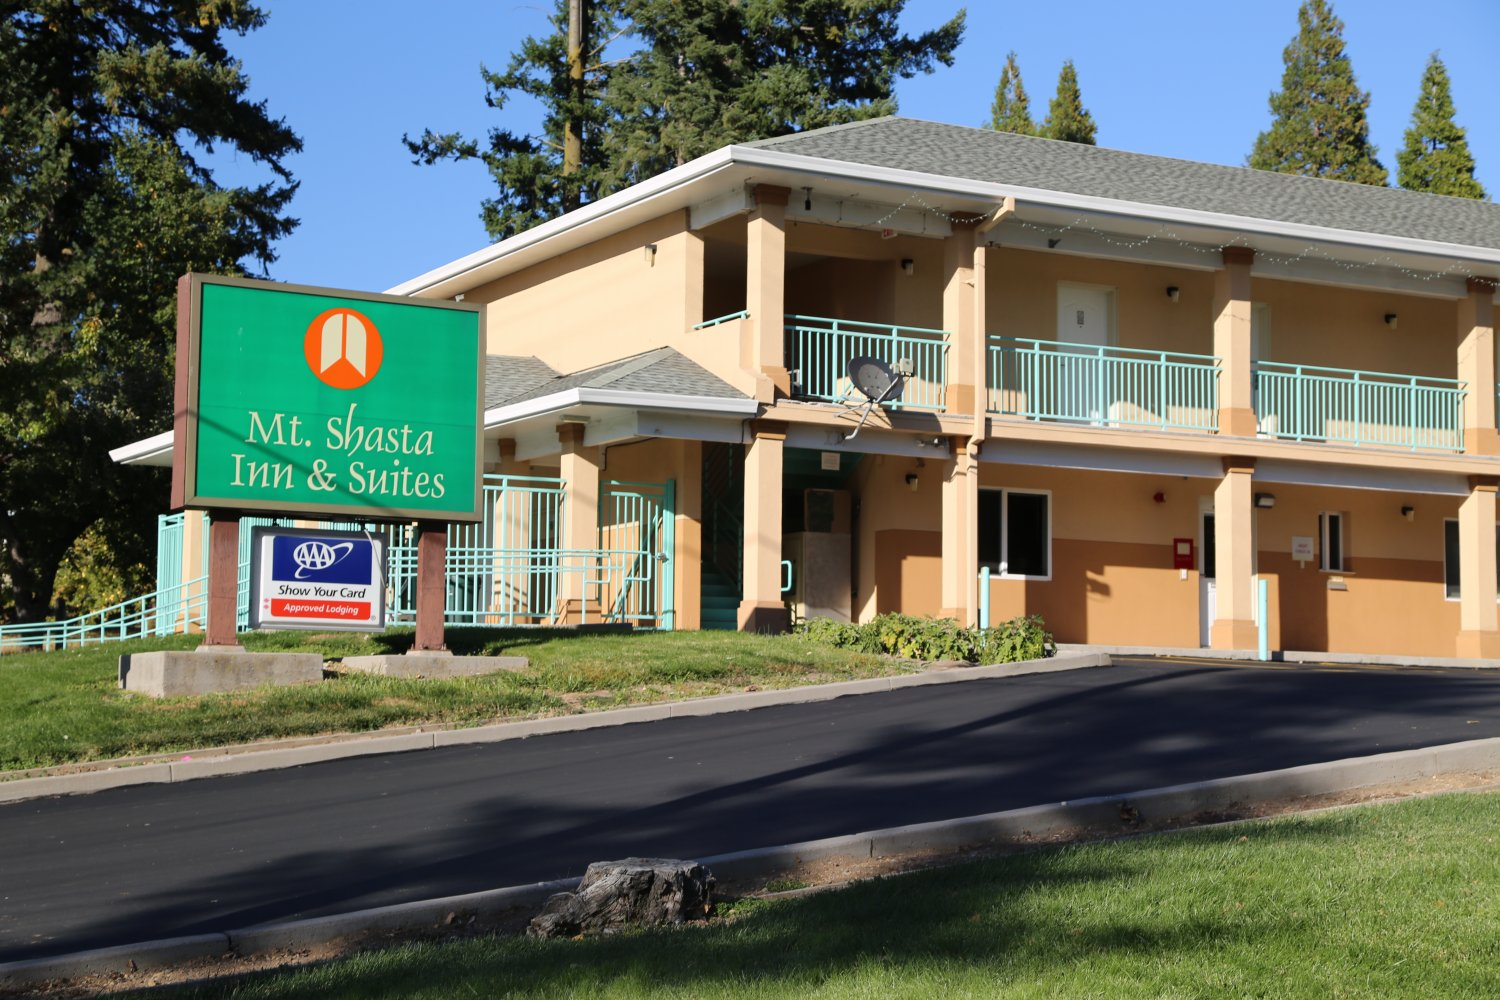 Mount Shasta Inn Suites Was Built In 2000 And Despite Being 20 Years Old Is One Of The Newer Hotels City Features Clean Rooms Including